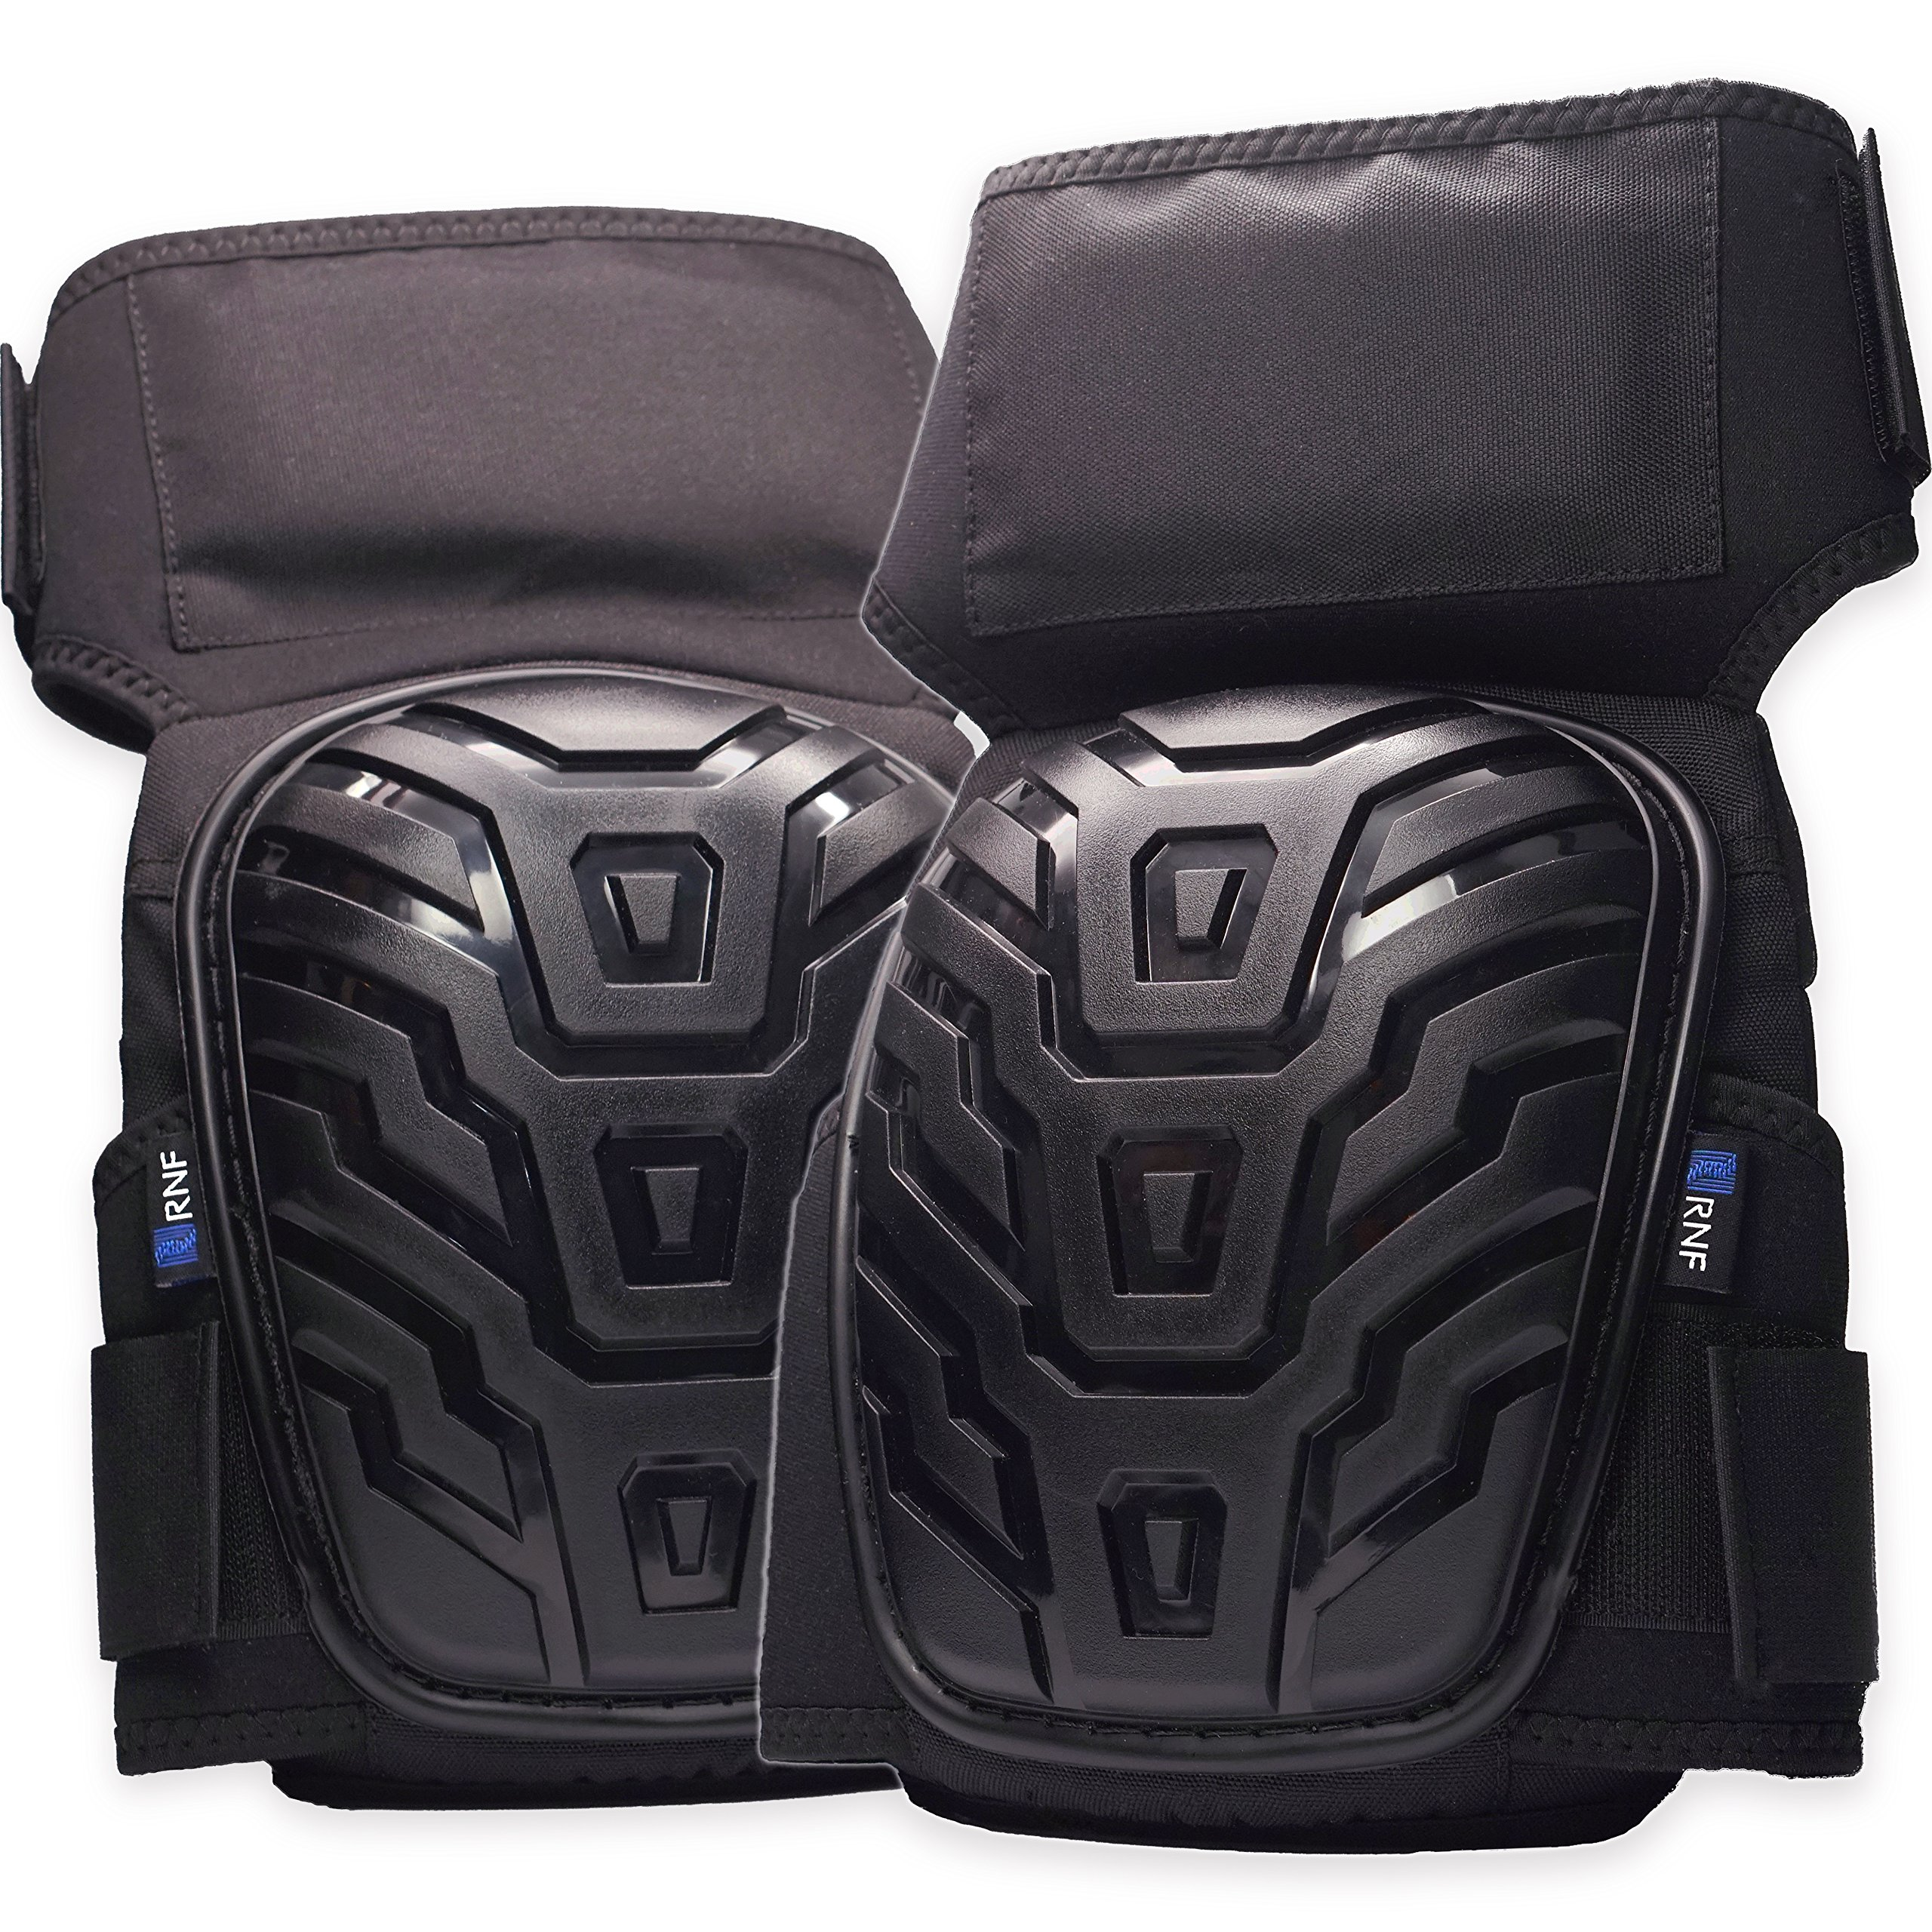 RNF Professional Knee Pads - Durable Thigh Straps. Stays in position while you Work - Comfortable foam padding and gel cushion. Easy-to-use Velcro strap fits Men & Women